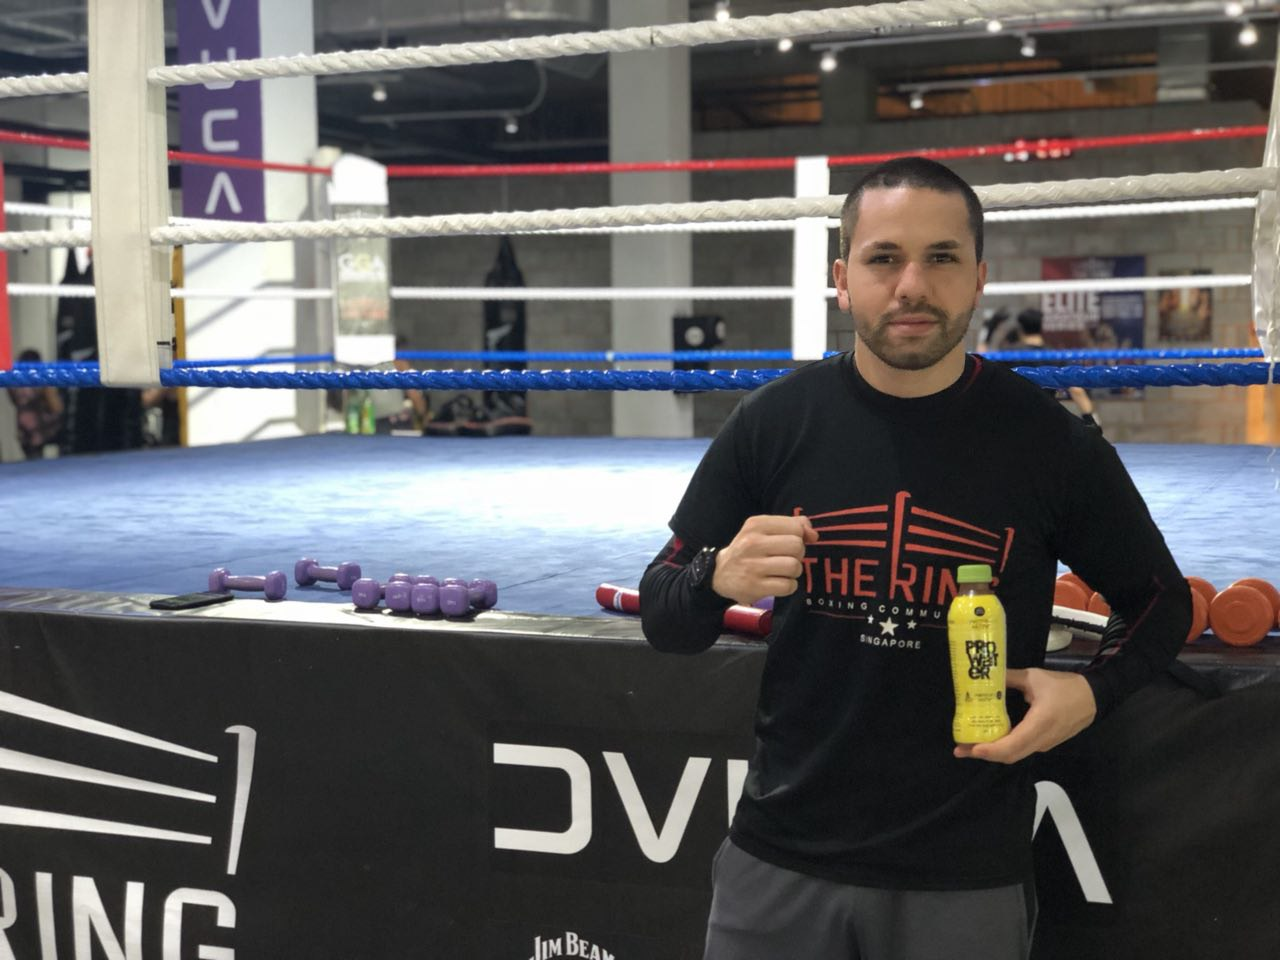 """Abdelelah or """"Abdou"""", coach of  The Ring  and Professional Fighter.  Image Credit: The Ring"""